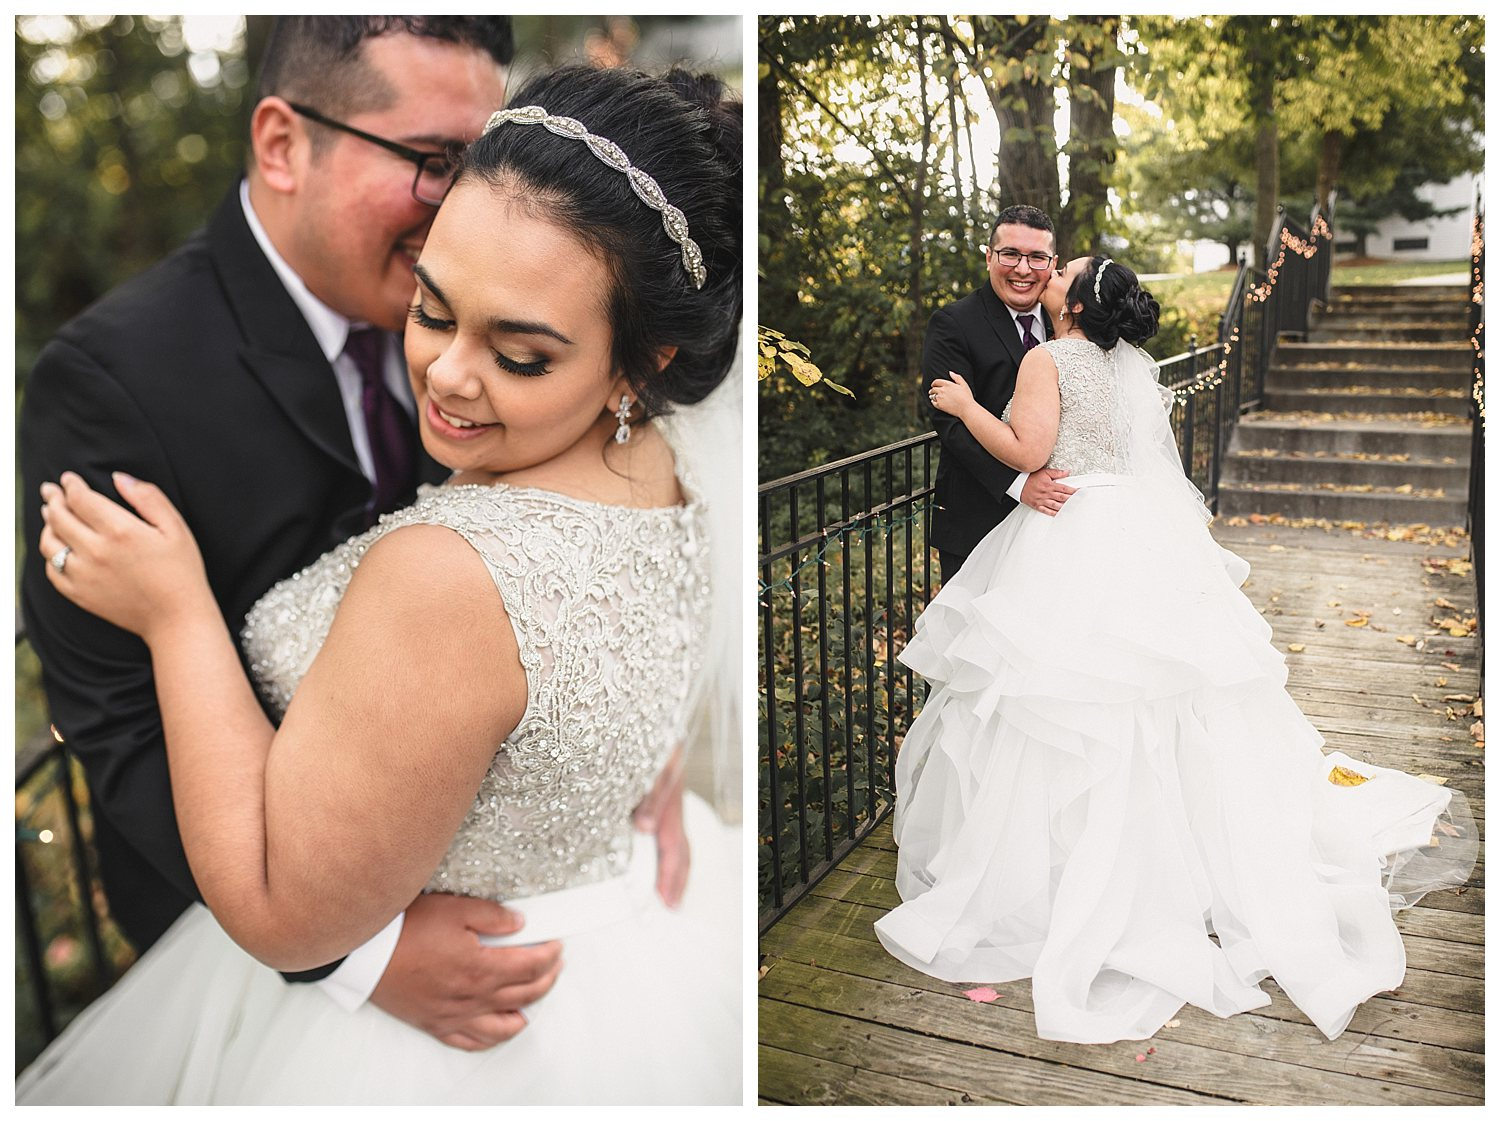 Kelsey_Diane_Photography_Hawthorne_House_Parkville_Kansas_City_Wedding_Veronica_Pat_0037.jpg